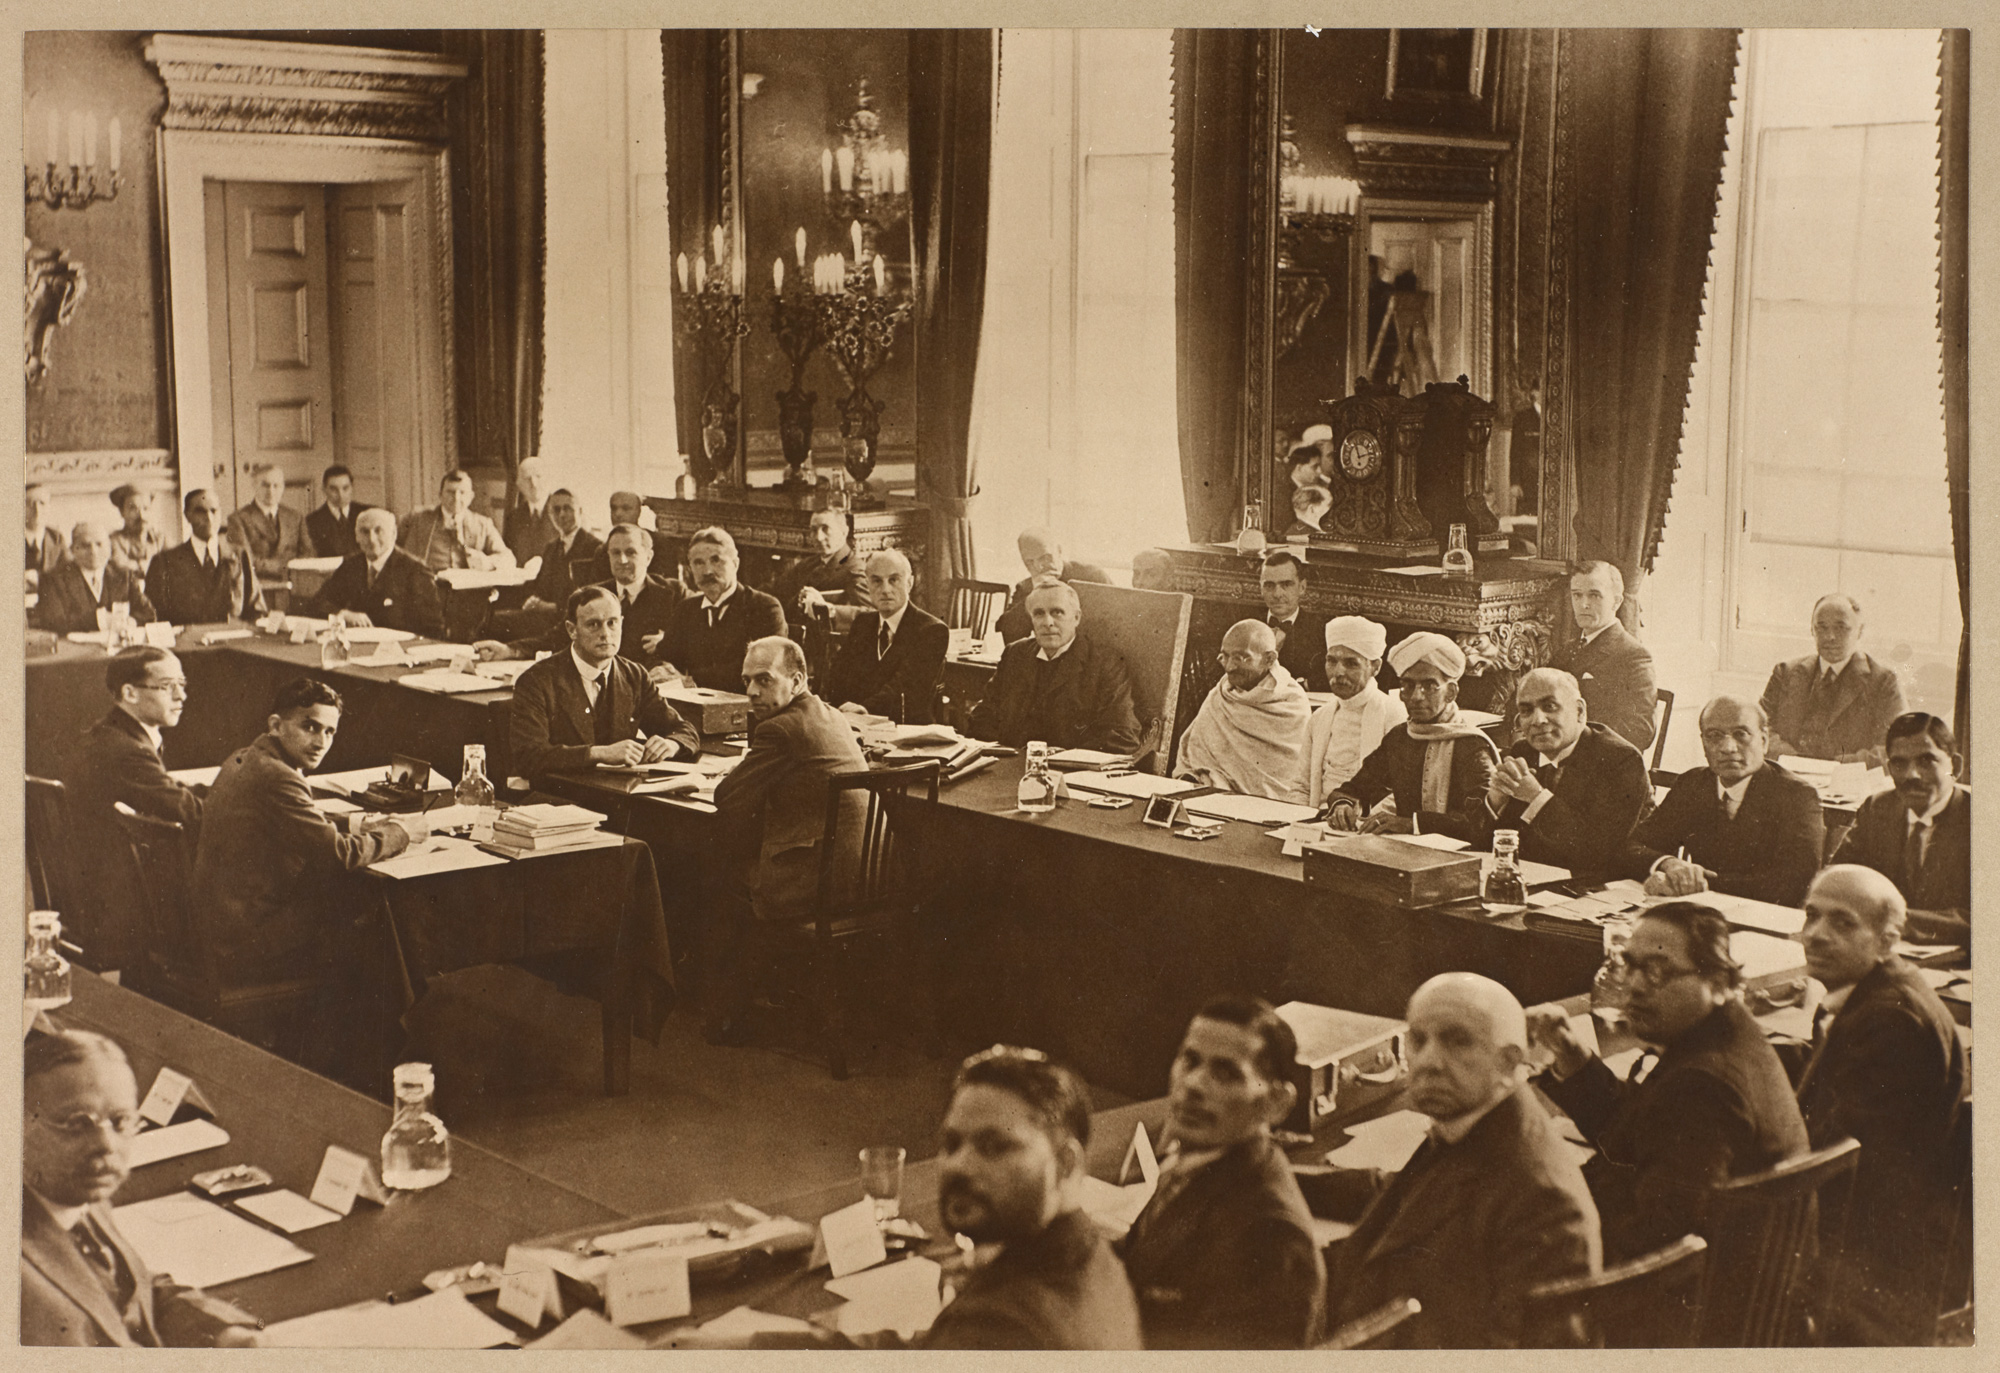 Photograph of the second session of the Round Table Conference